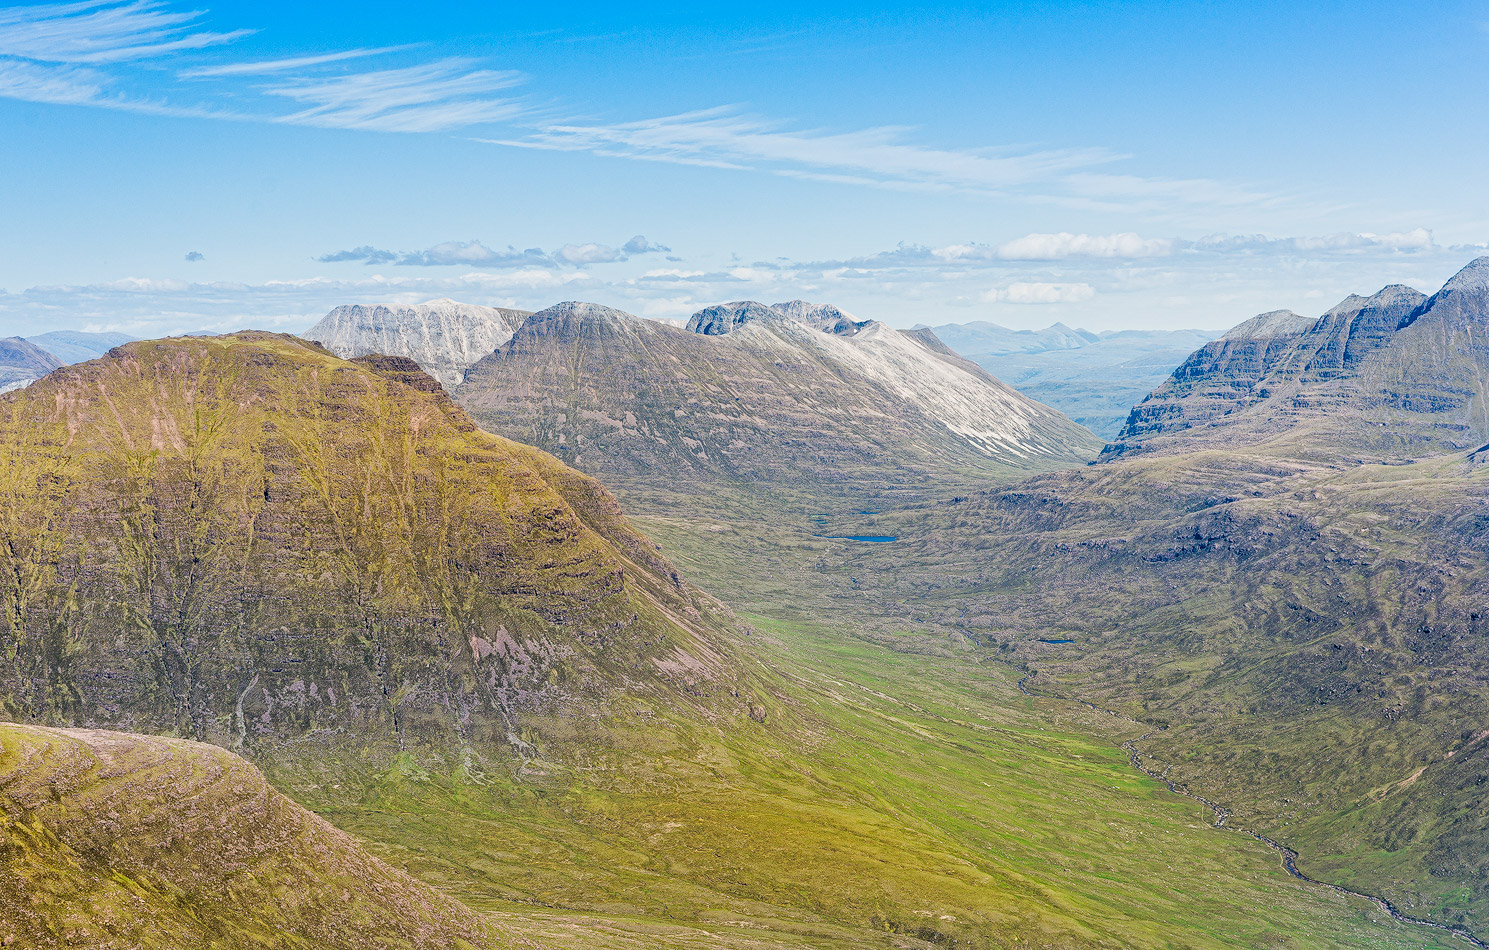 Torridon mountains in North West of Scotland